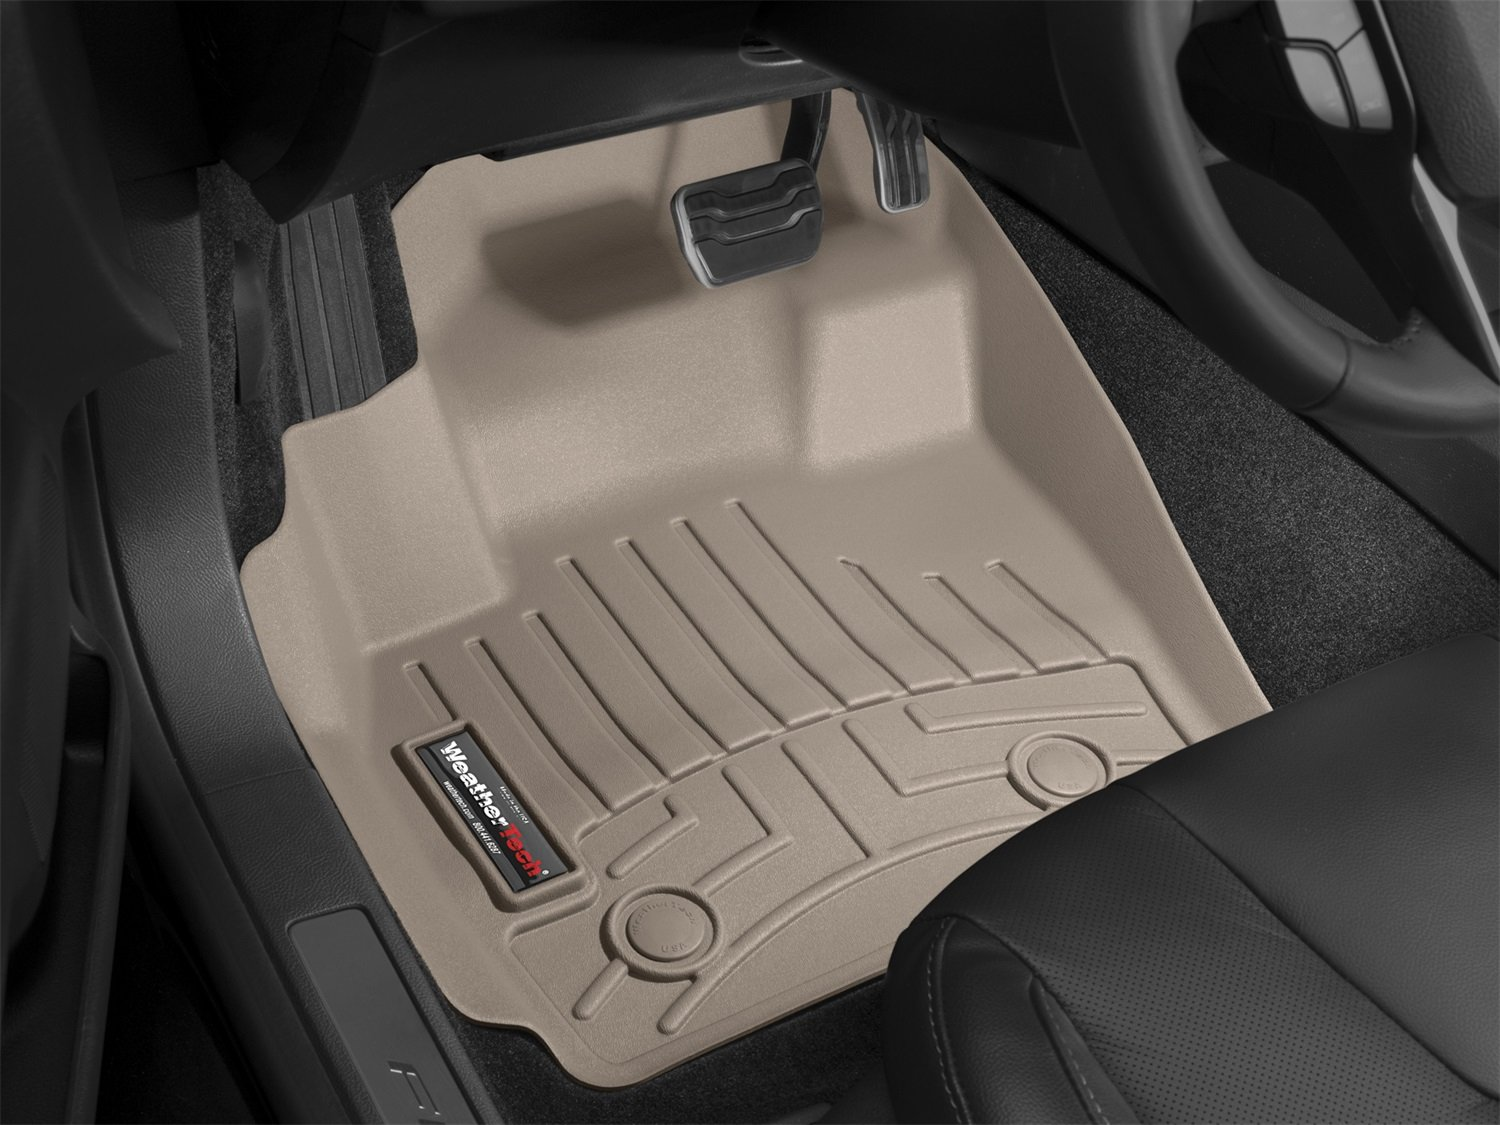 altima full ximg accessories nissan smart mats vehicles m cars mat l floor accessory usa